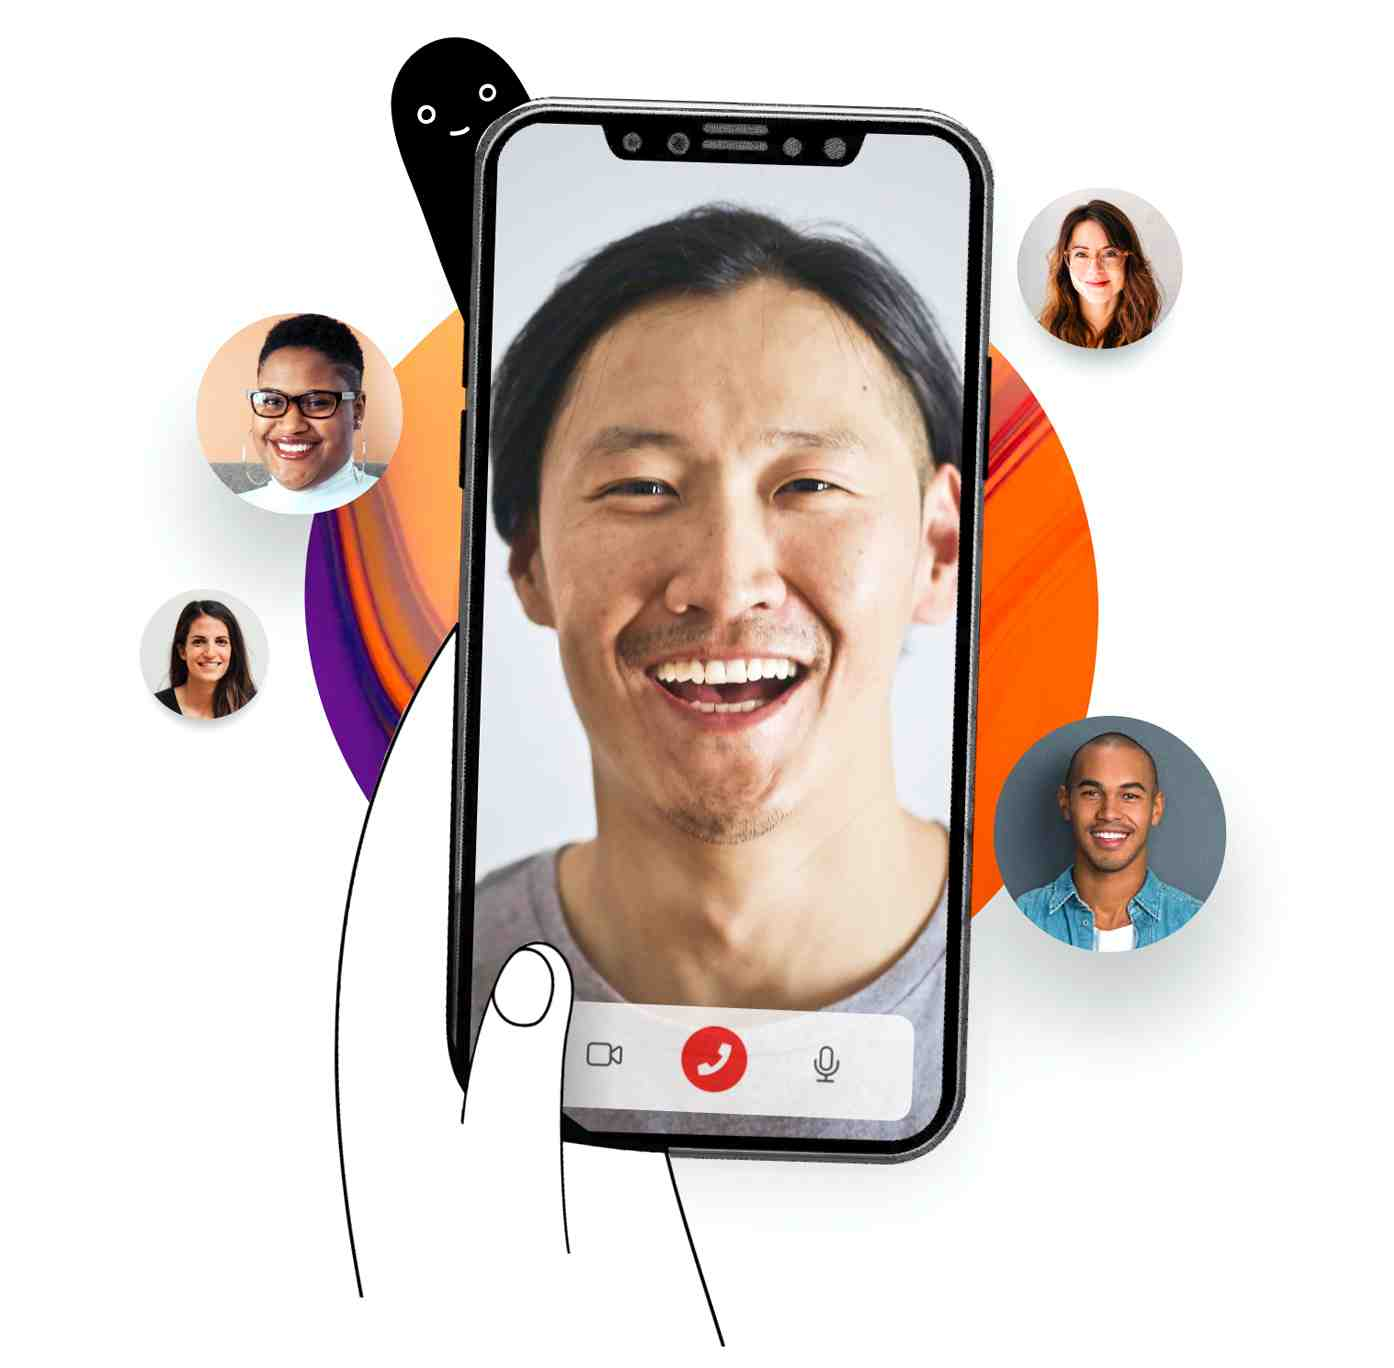 Clinician on a video call with other people around it in round bubbles